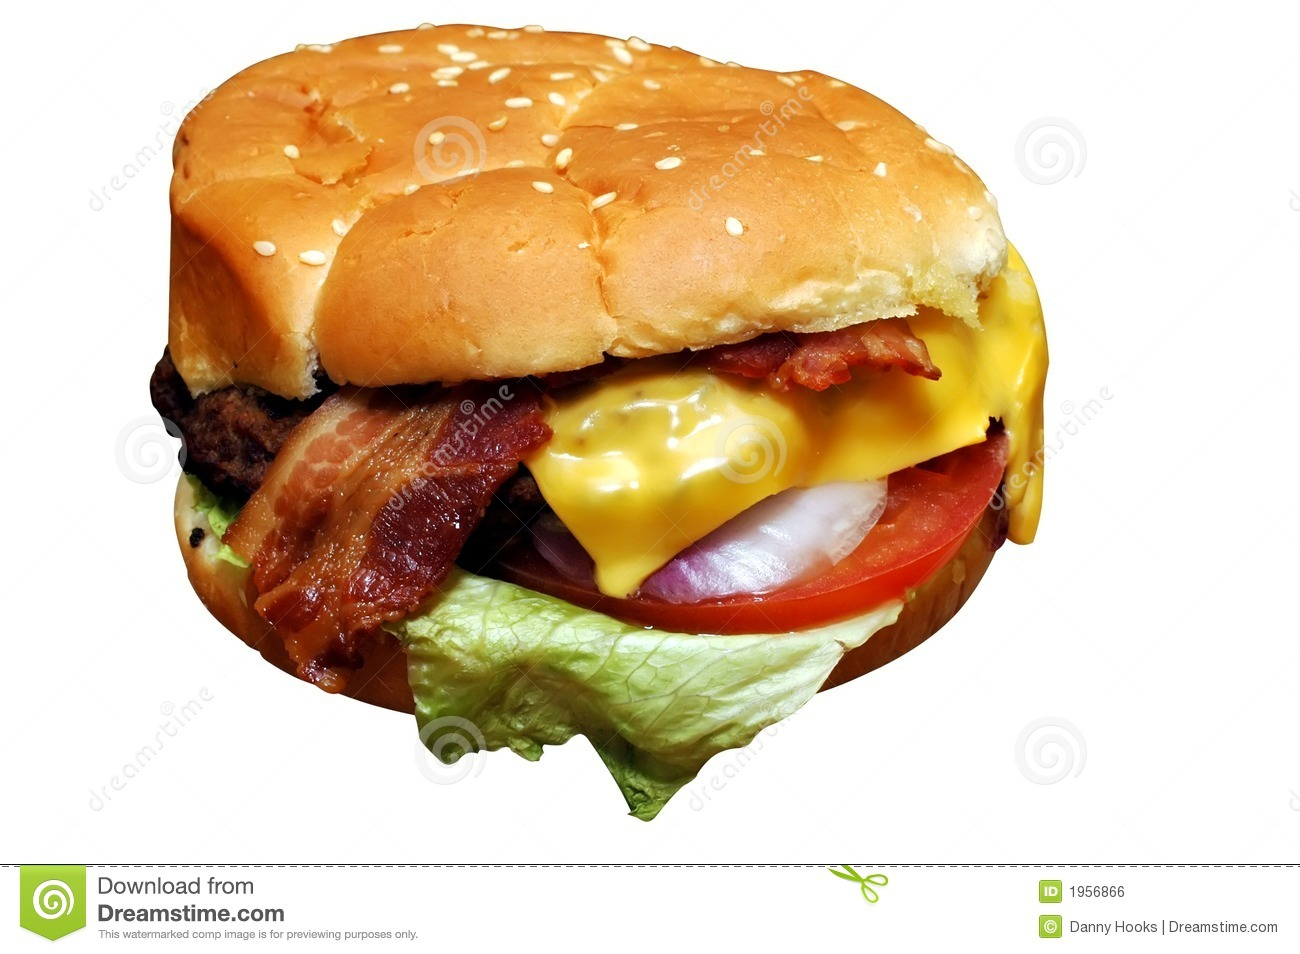 Bacon Cheeseburger Clip Art | www.imgkid.com - The Image ...